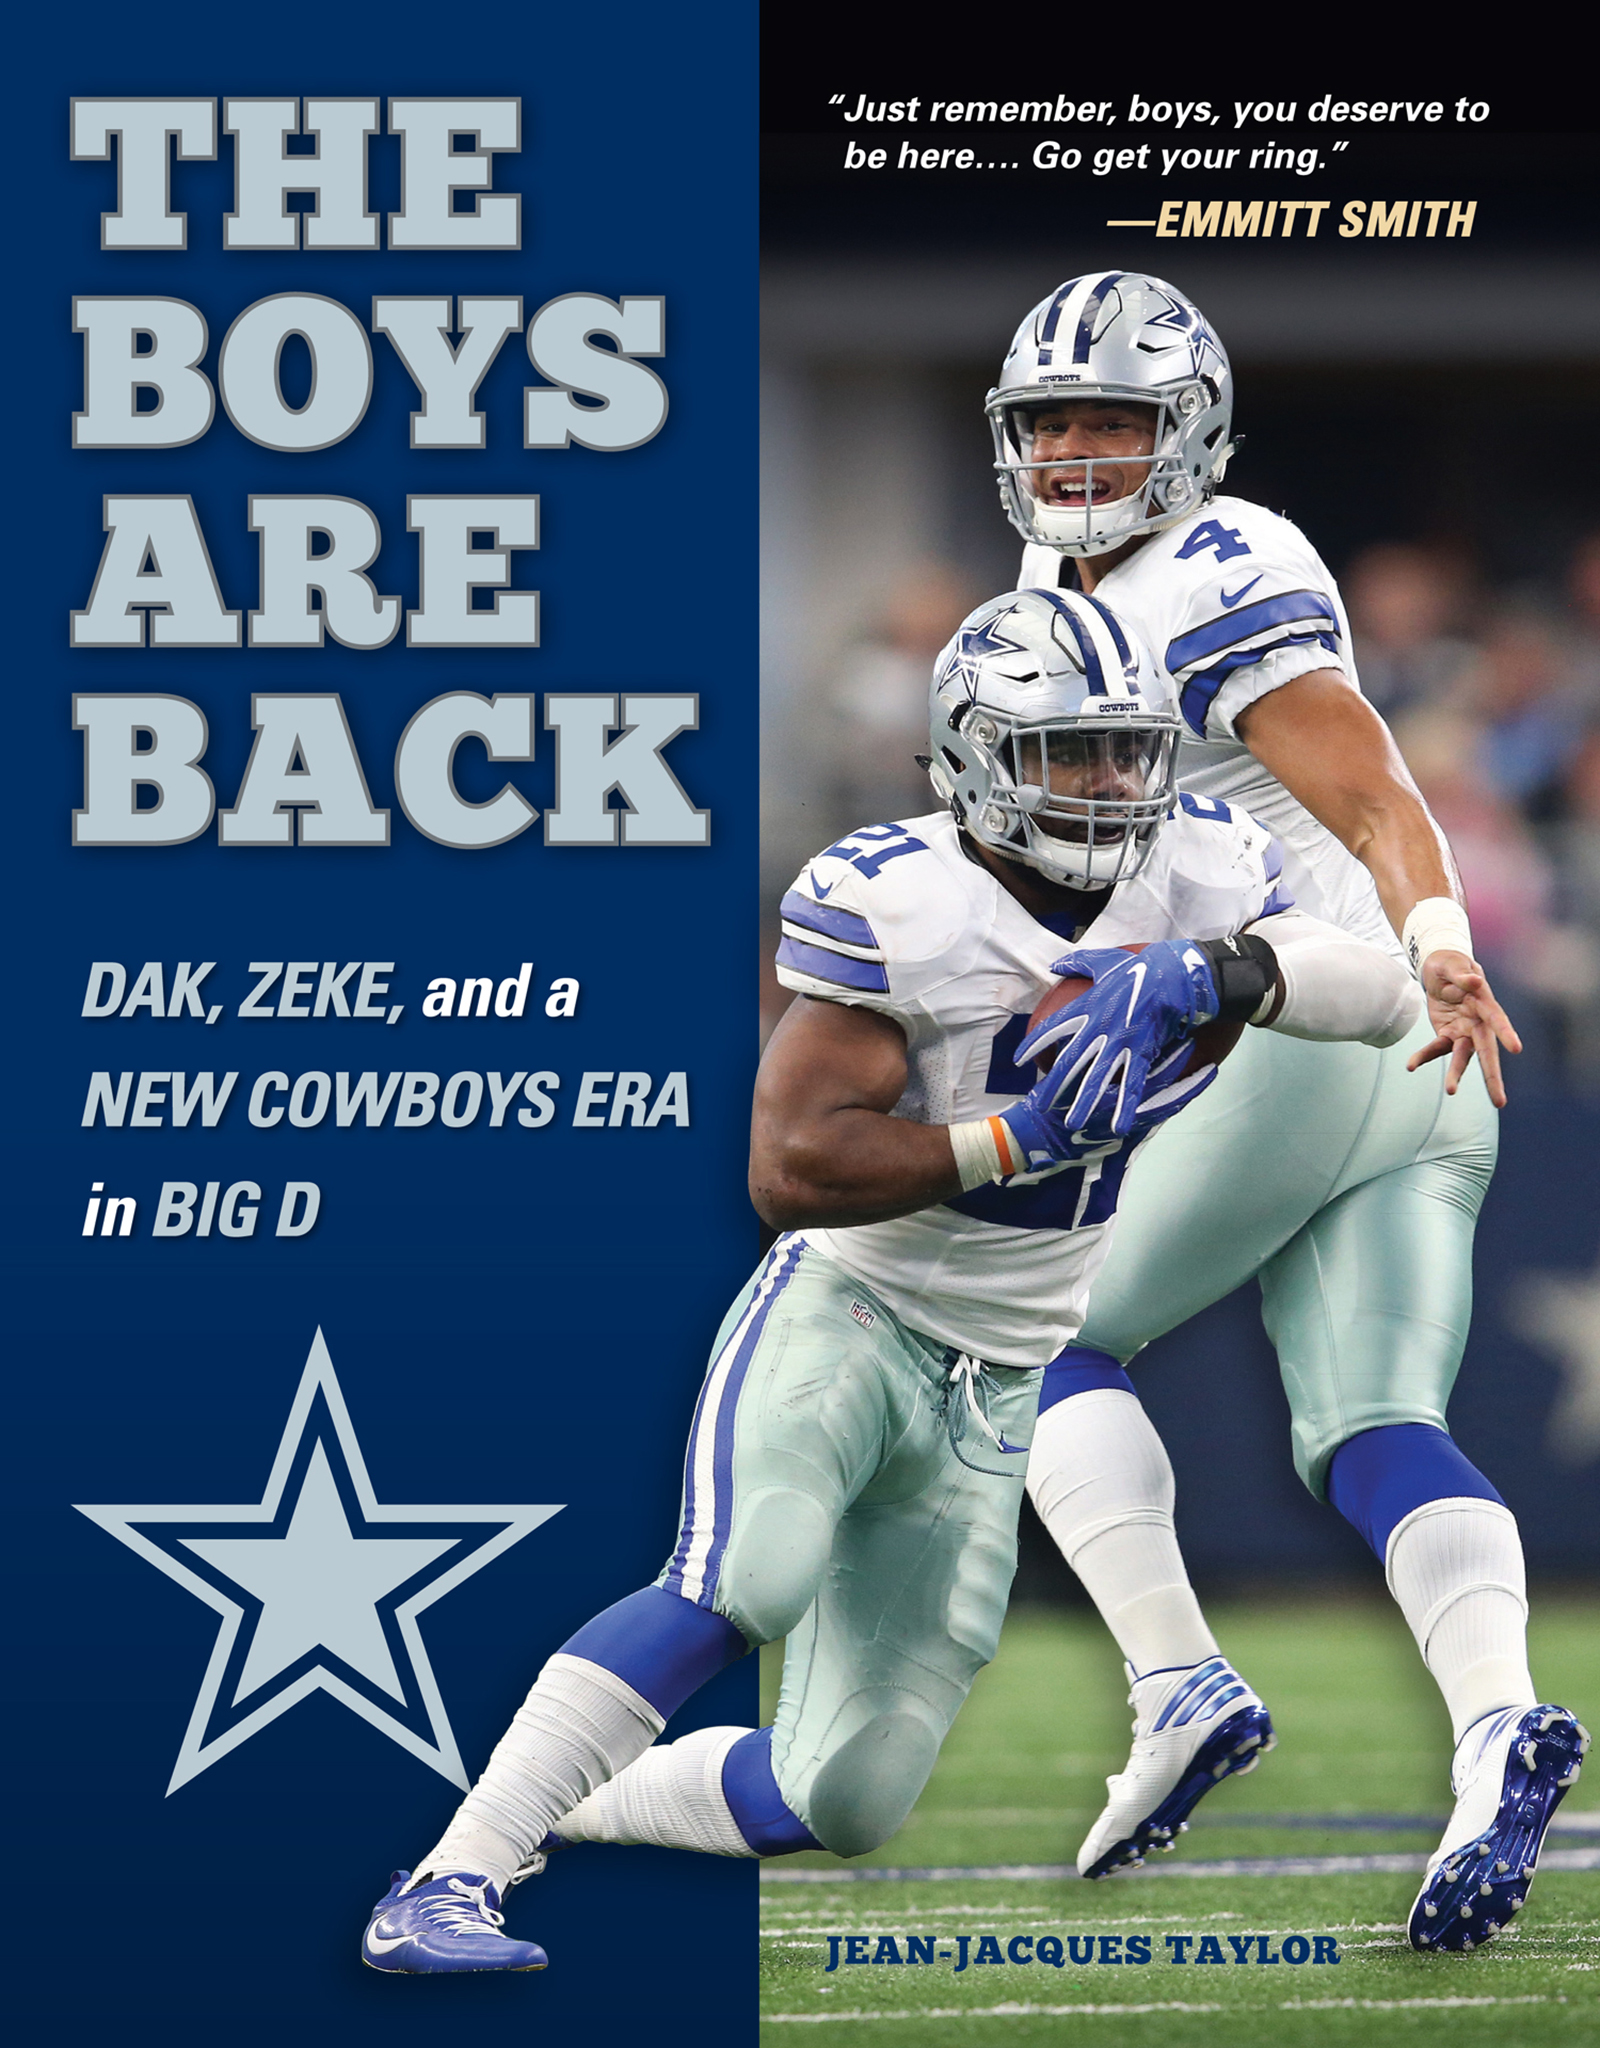 Boys are Back Dak, Zeke, and a New Cowboys Era in Big D